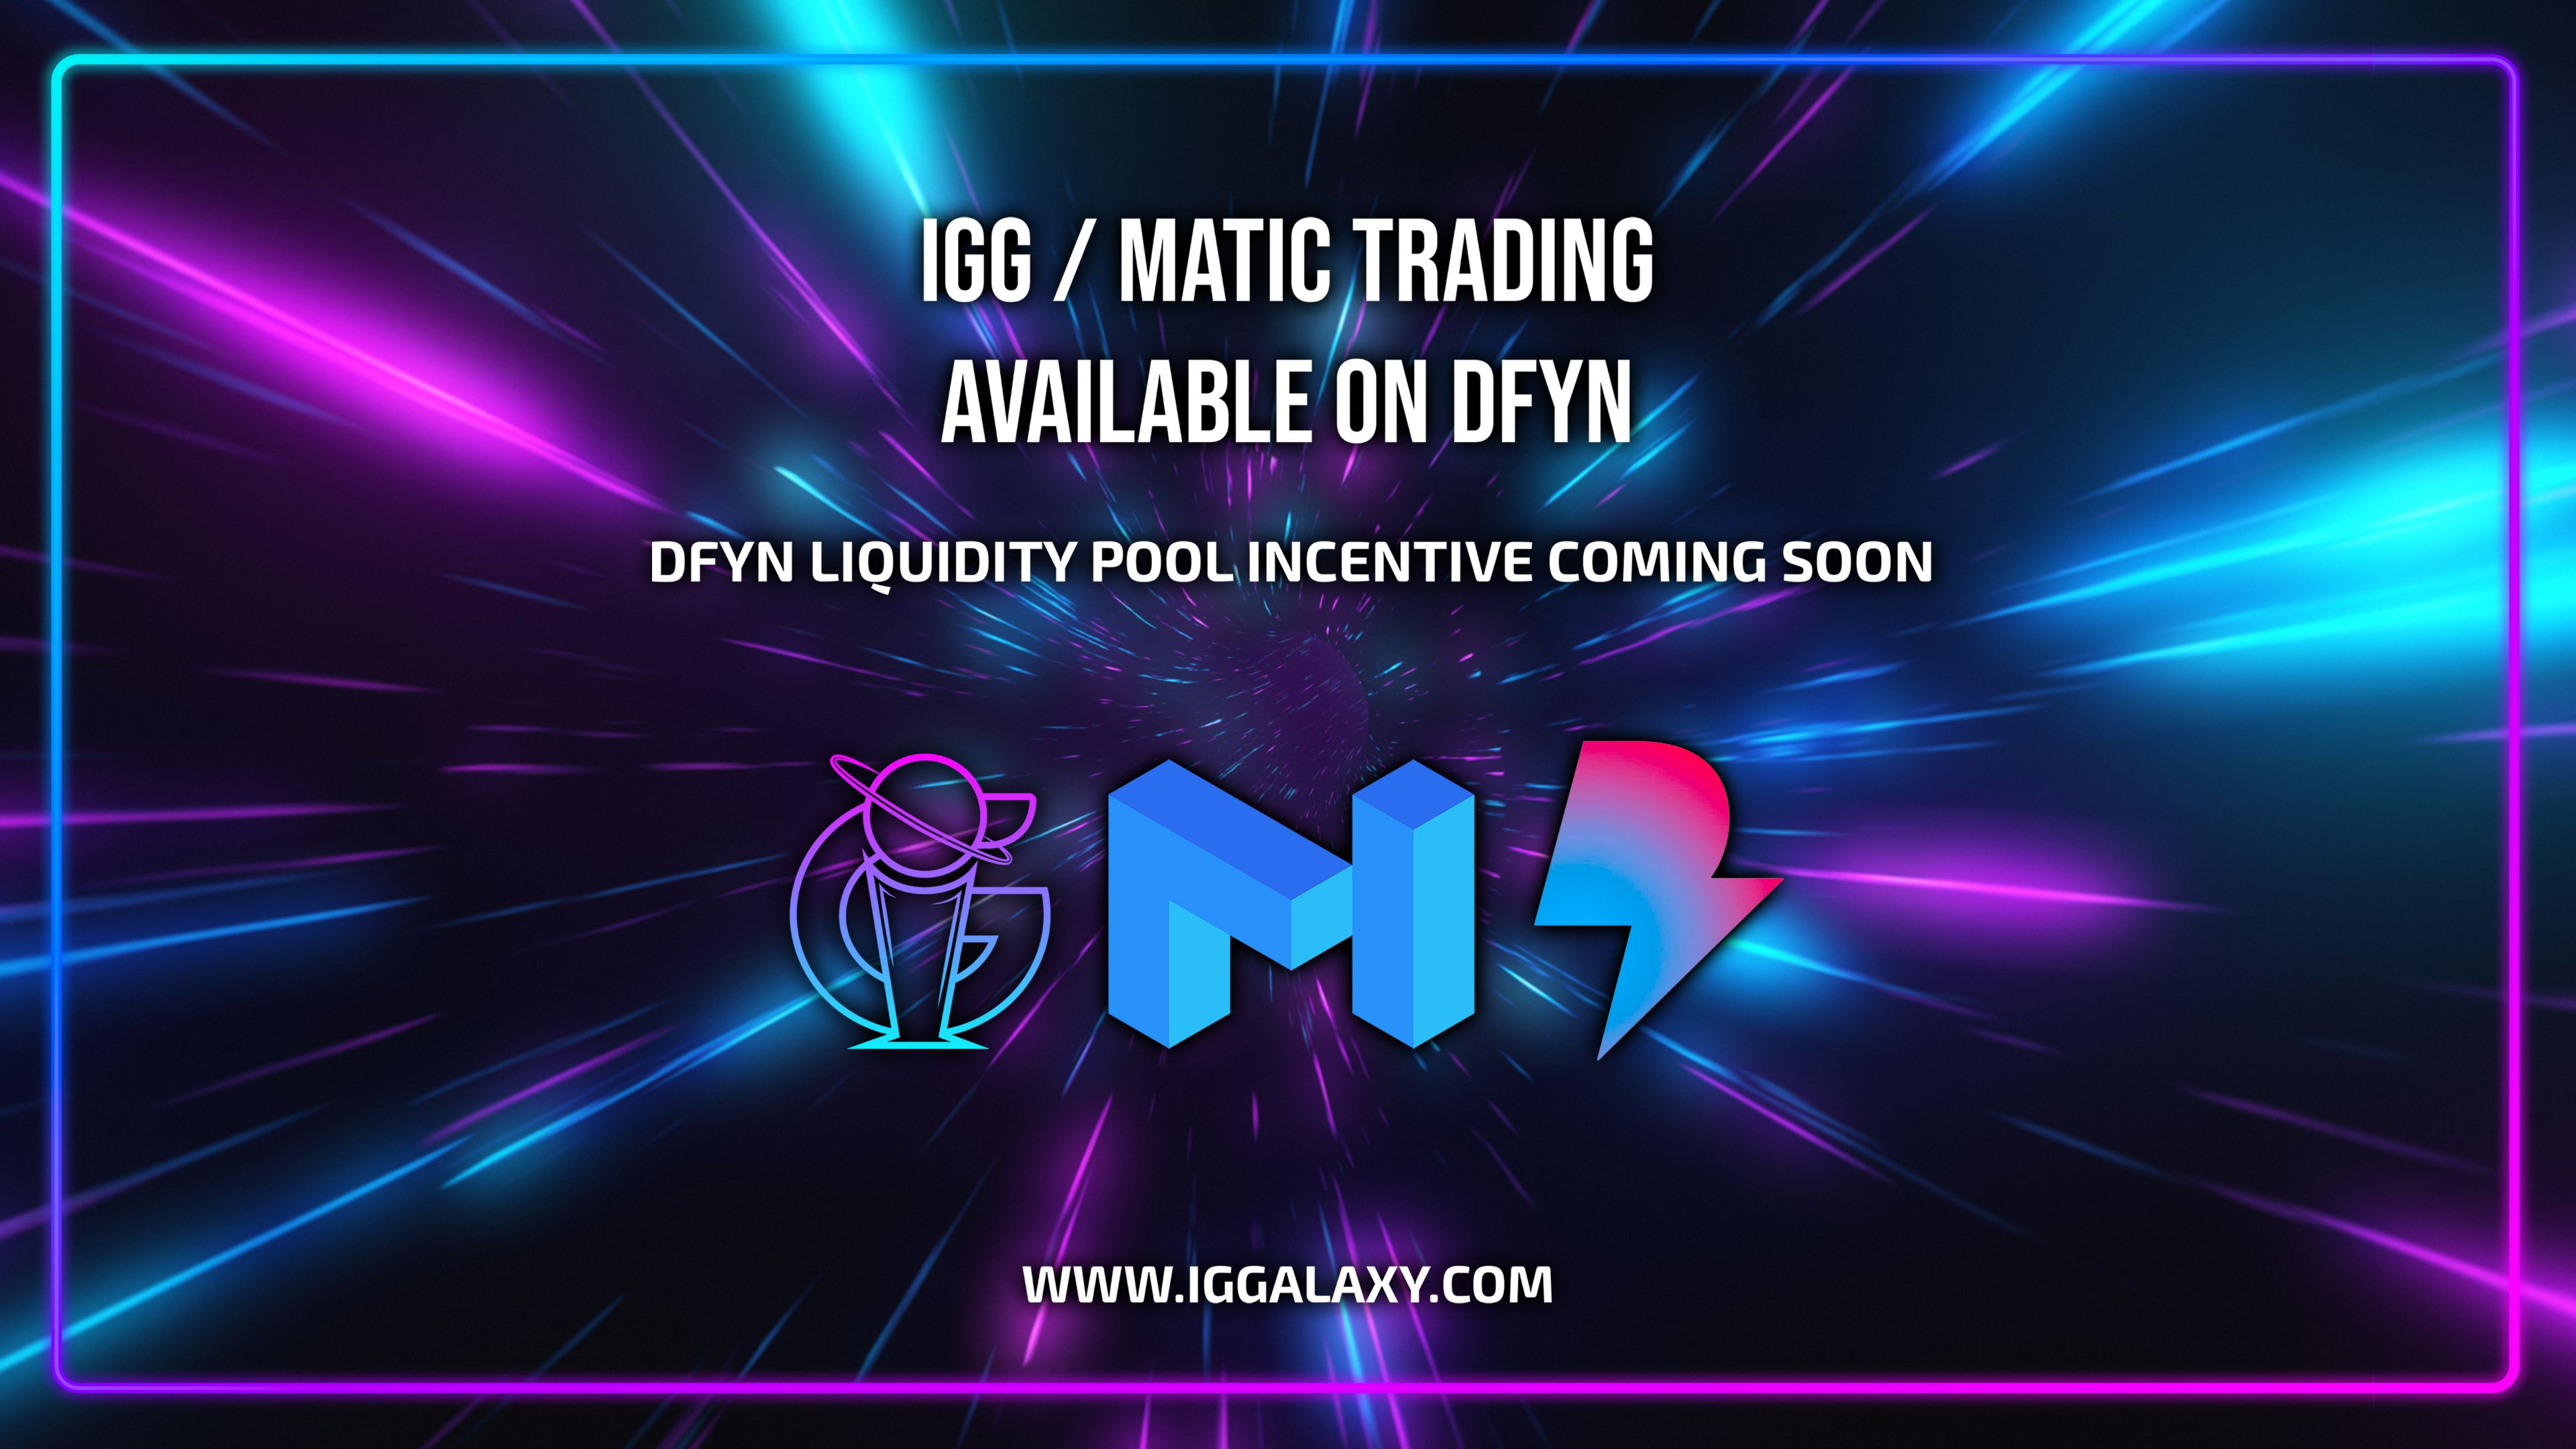 IGG/MATIC trading available on Dfyn exchange!